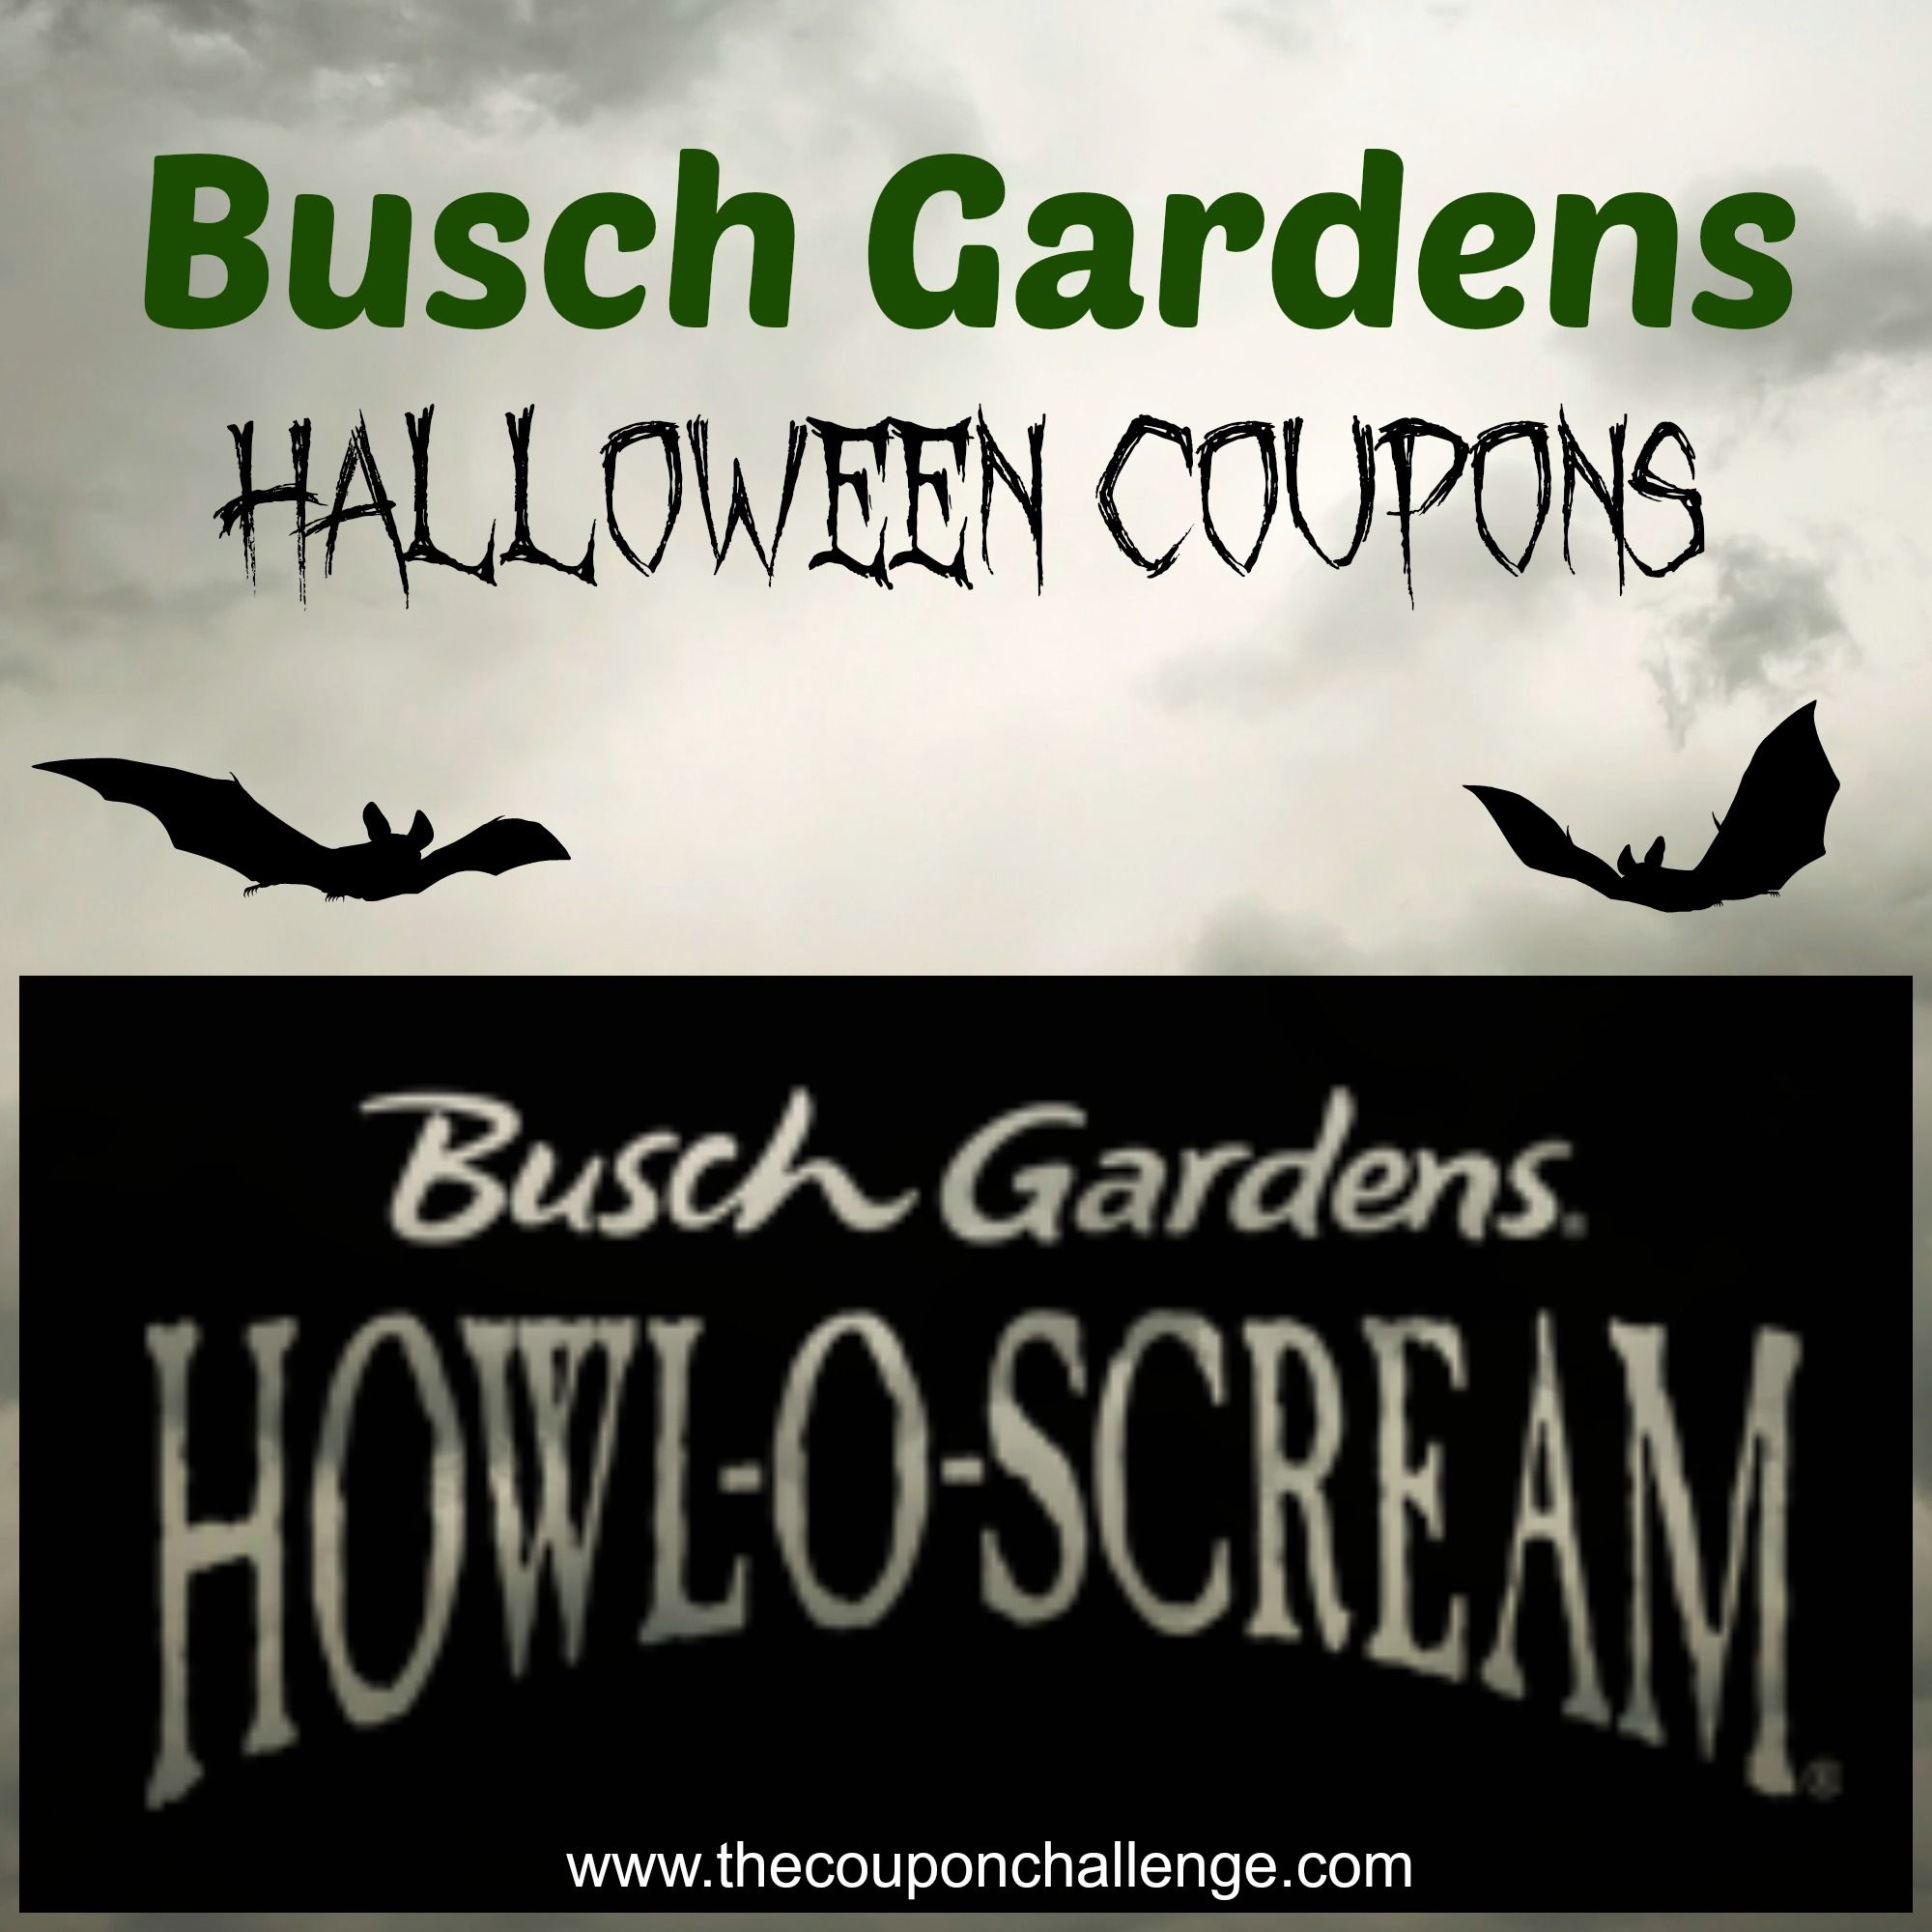 8406033745abbda7b41391ef0c9dda17 - Busch Gardens Howl O Scream Discount Coupons